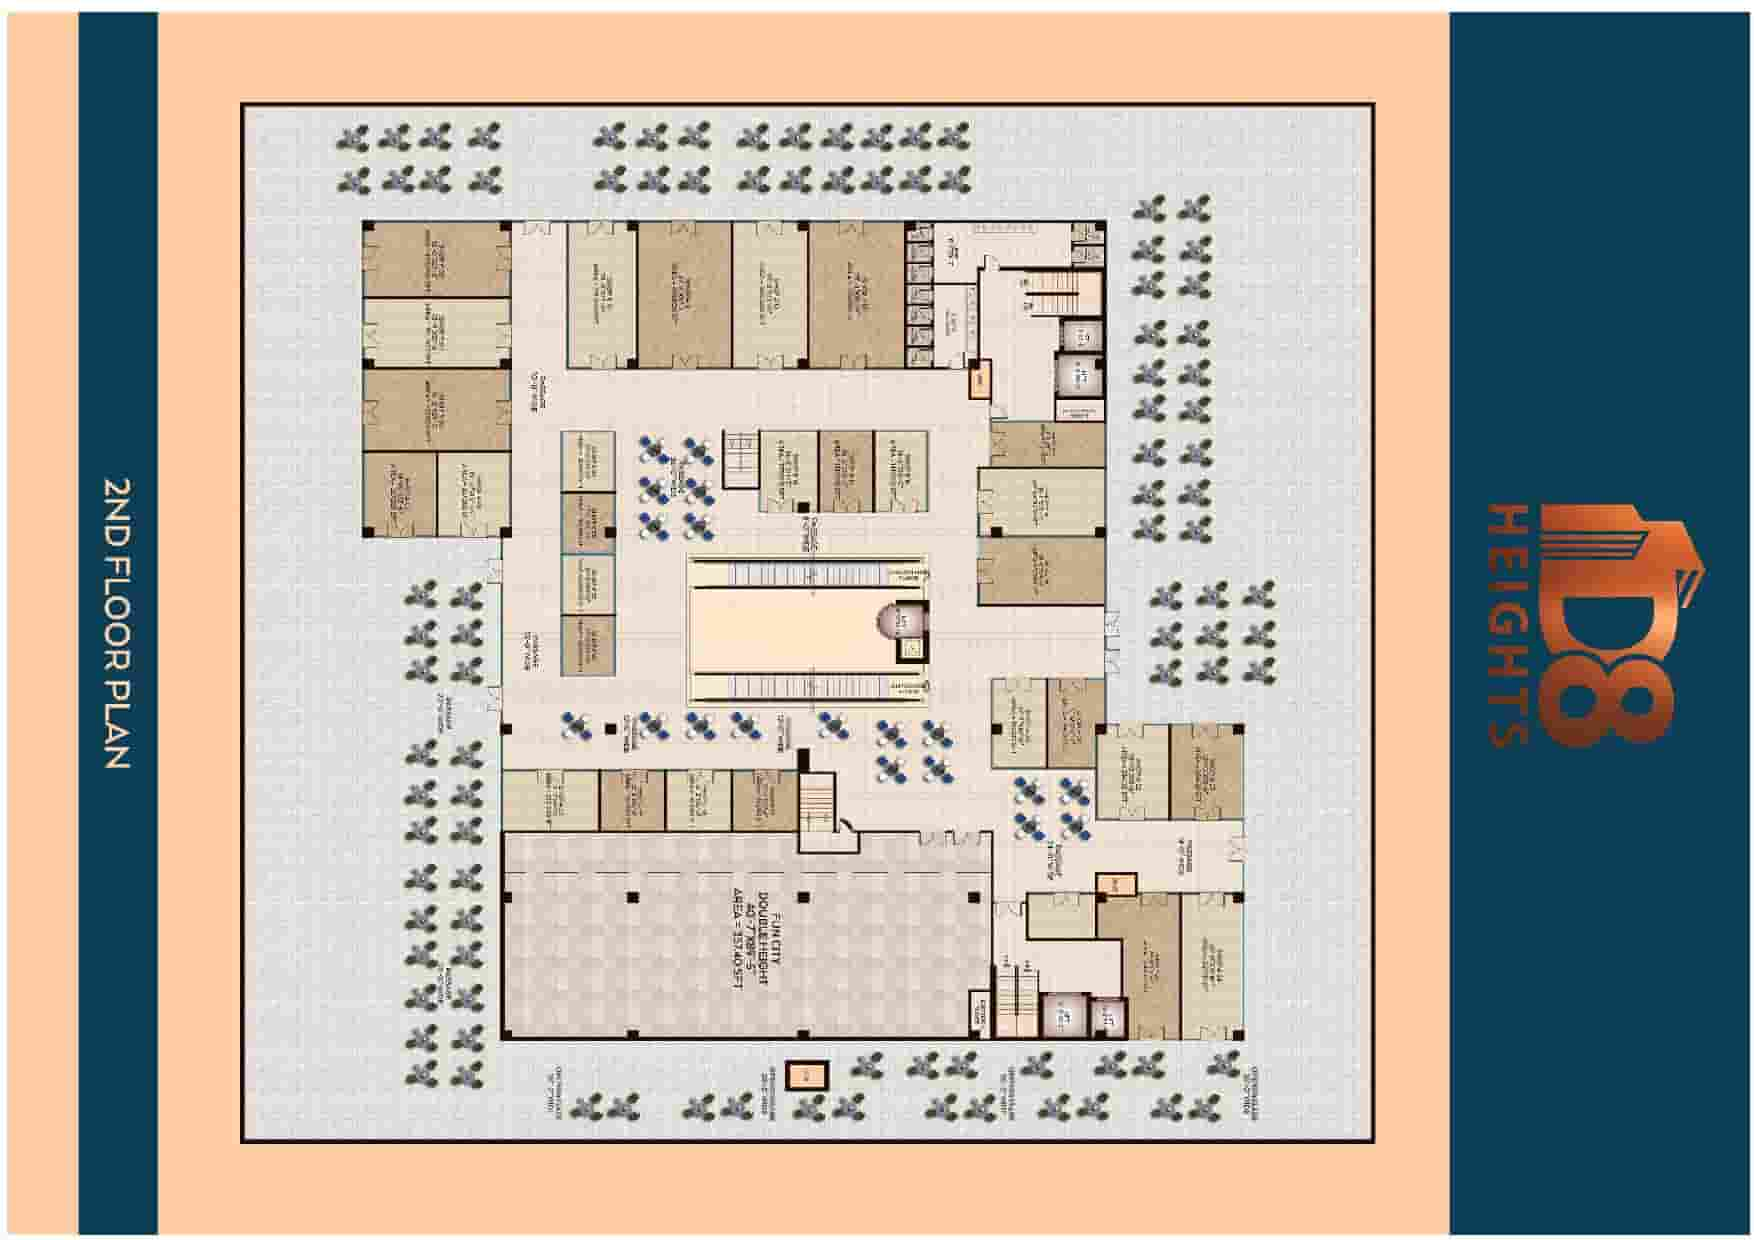 D8 Heights 2nd Floor Plan